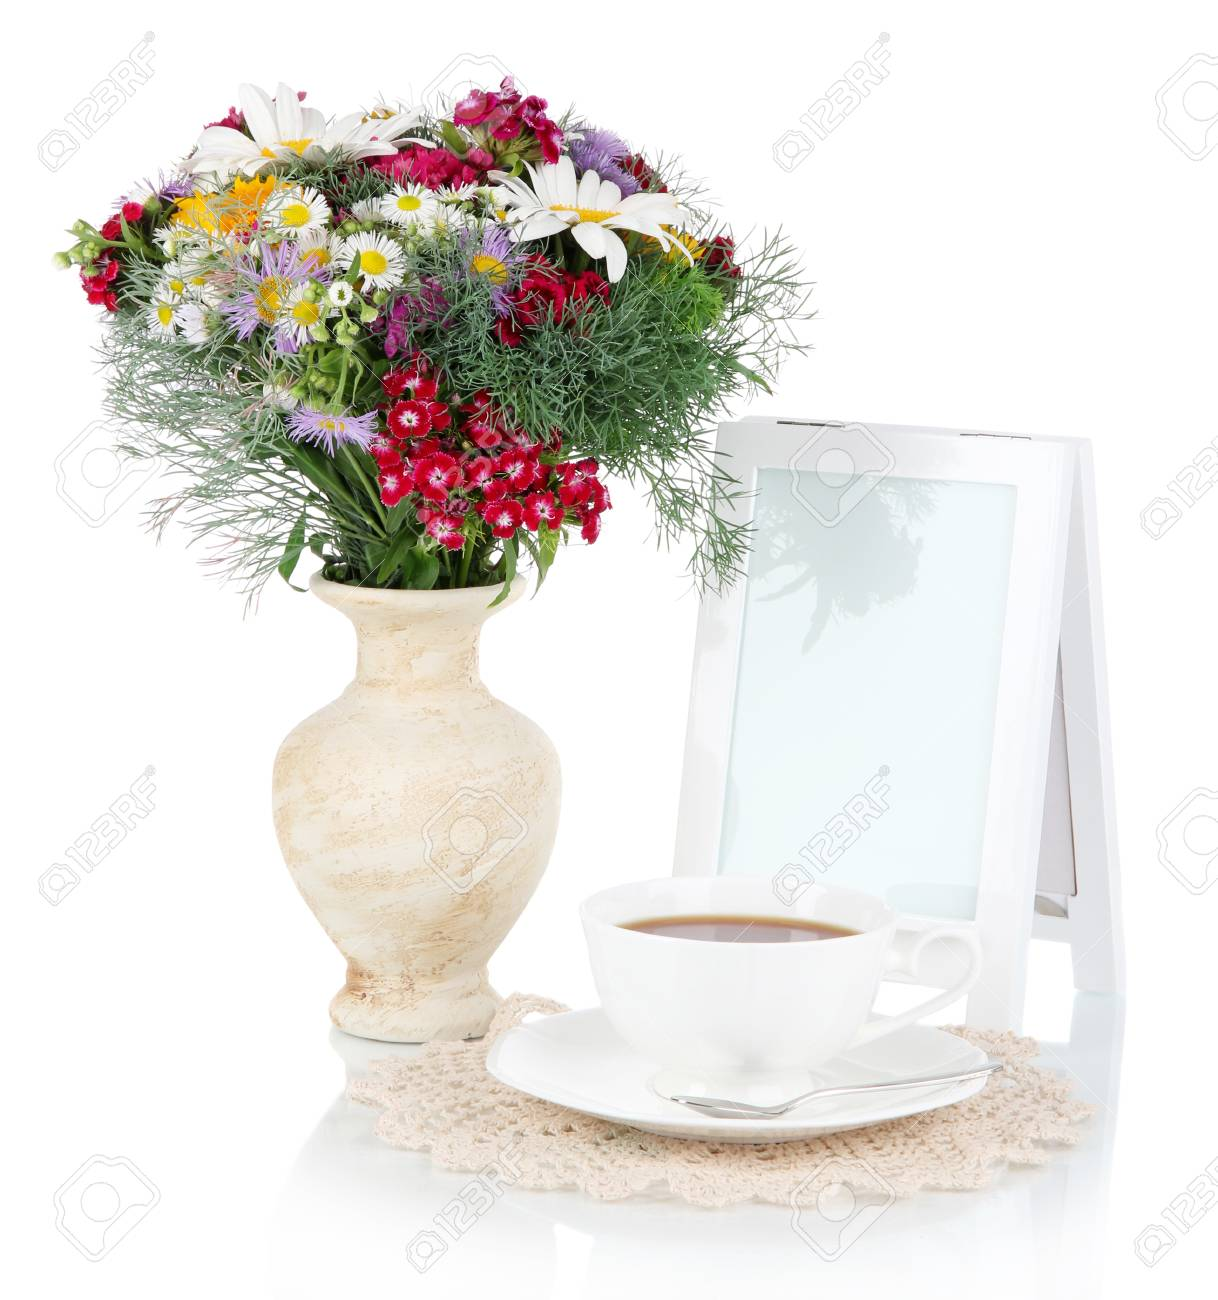 Beautiful Bright Flowers In Vase Isolated On White Stock Photo